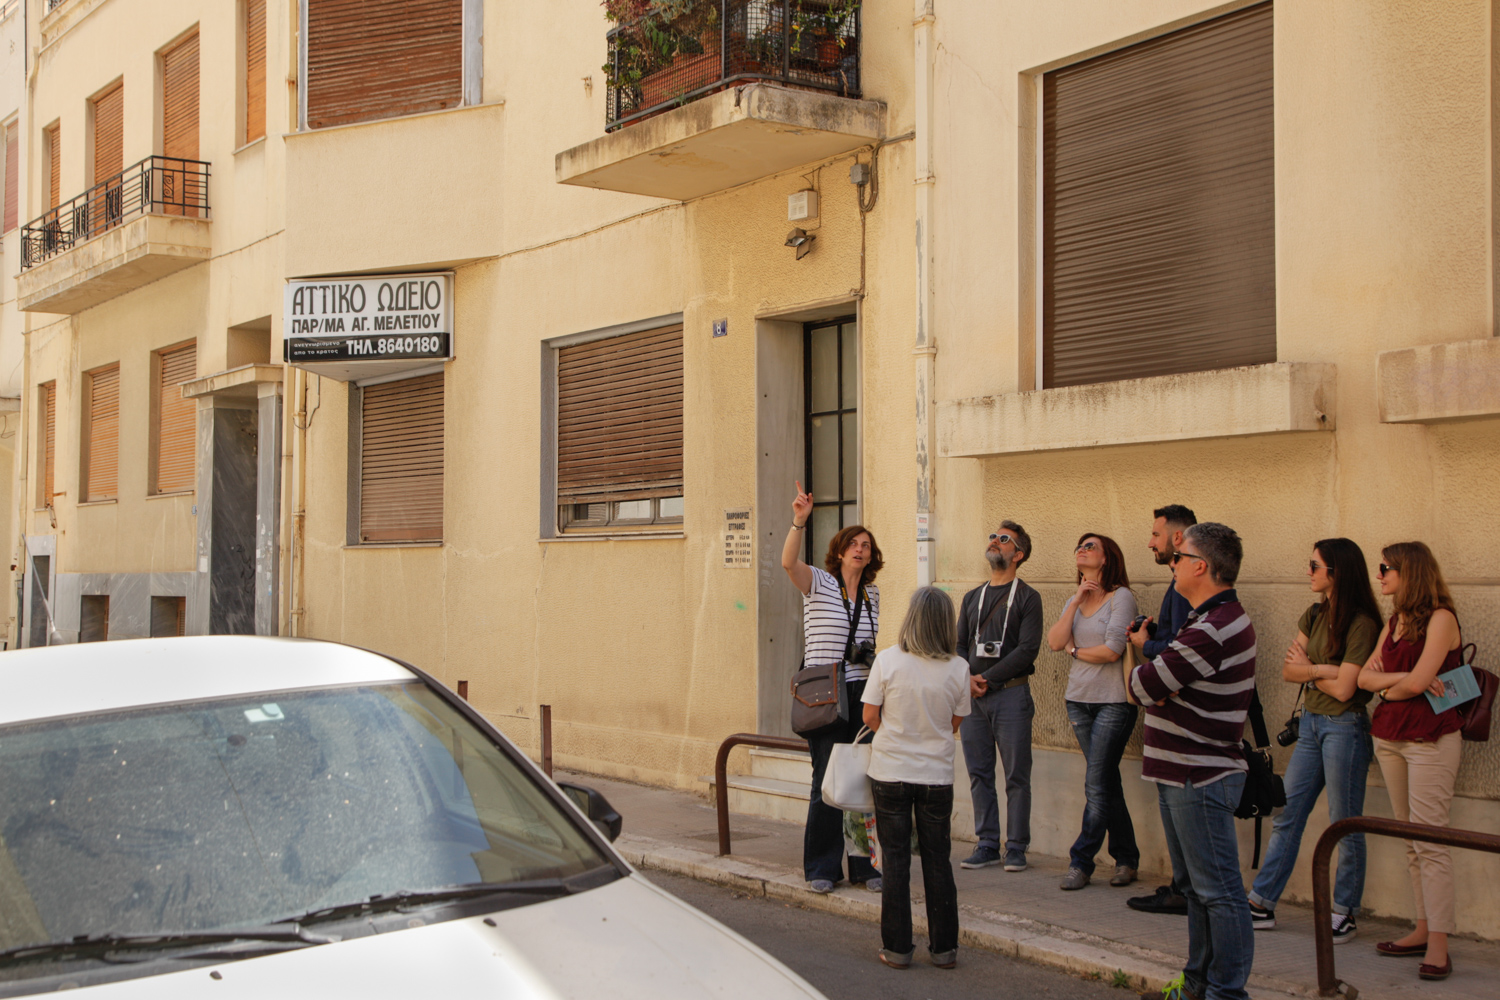 Architecture and photography walk co-led by Irini Gratsia from MONUMENTA.